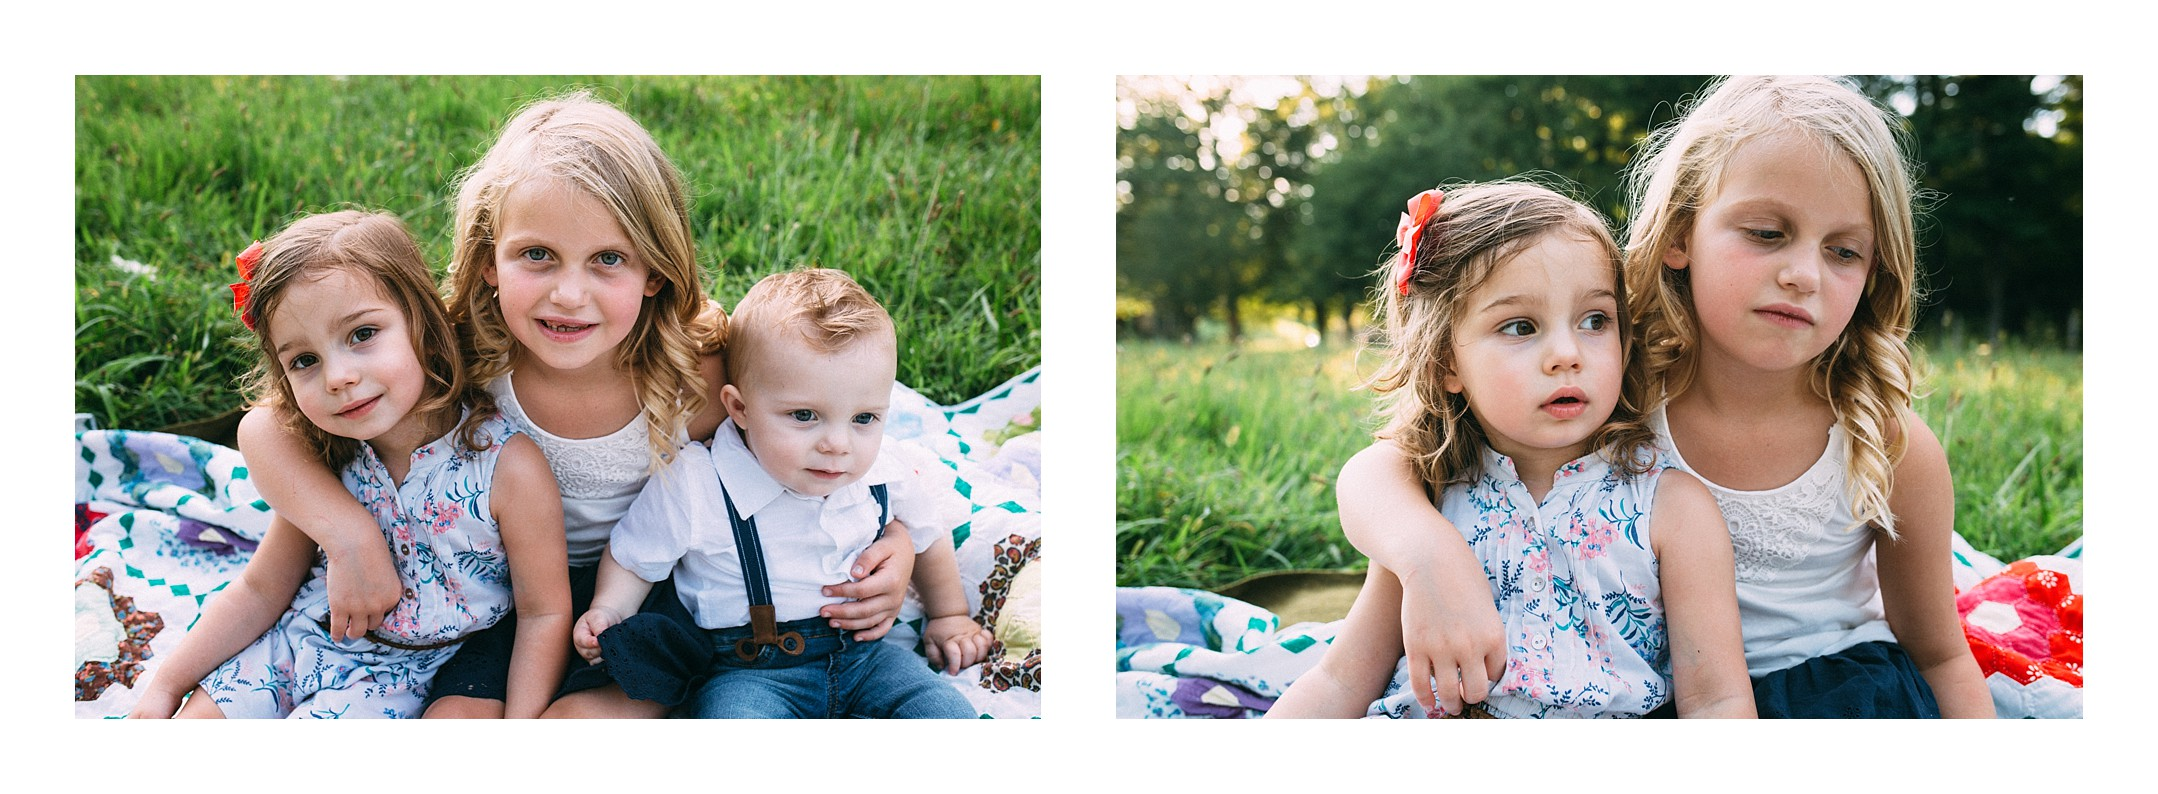 louisville family photographer southern indiana family photographer_0043.jpg